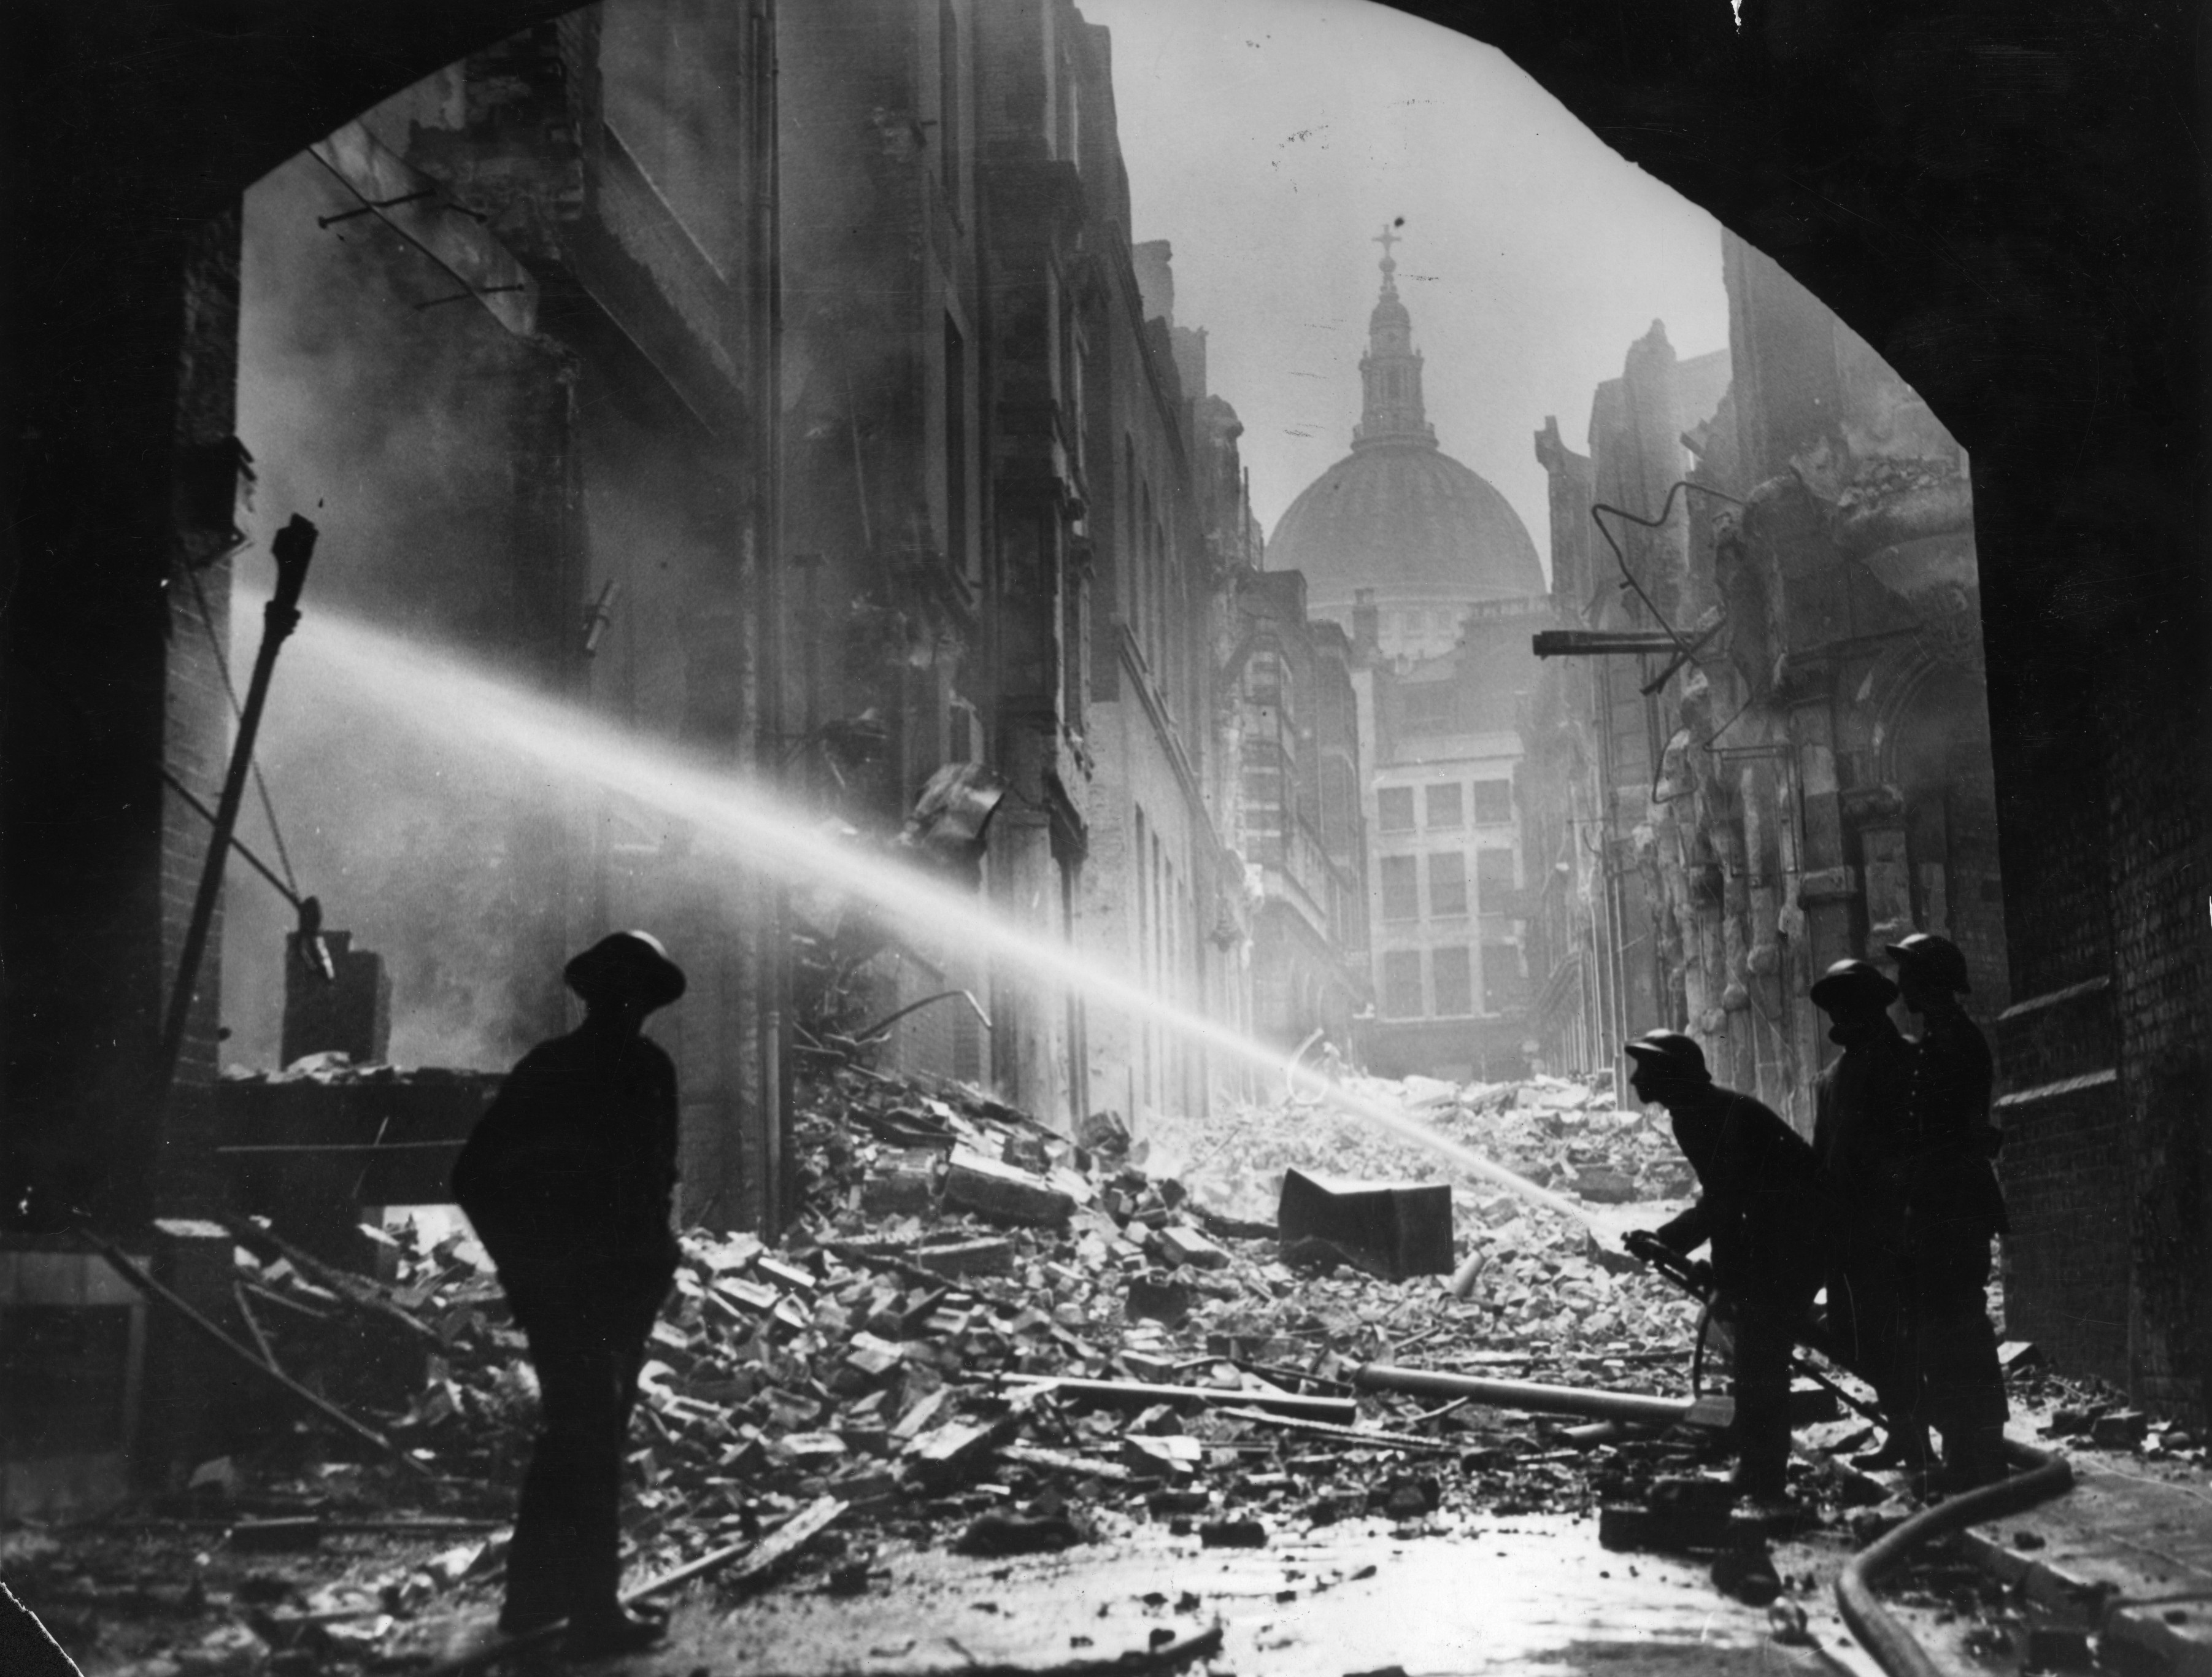 Firemen tackle a blitz fire amidst the rubble surrounding St Paul's Cathedral, London. (Photo by Fox Photos/Getty Images)